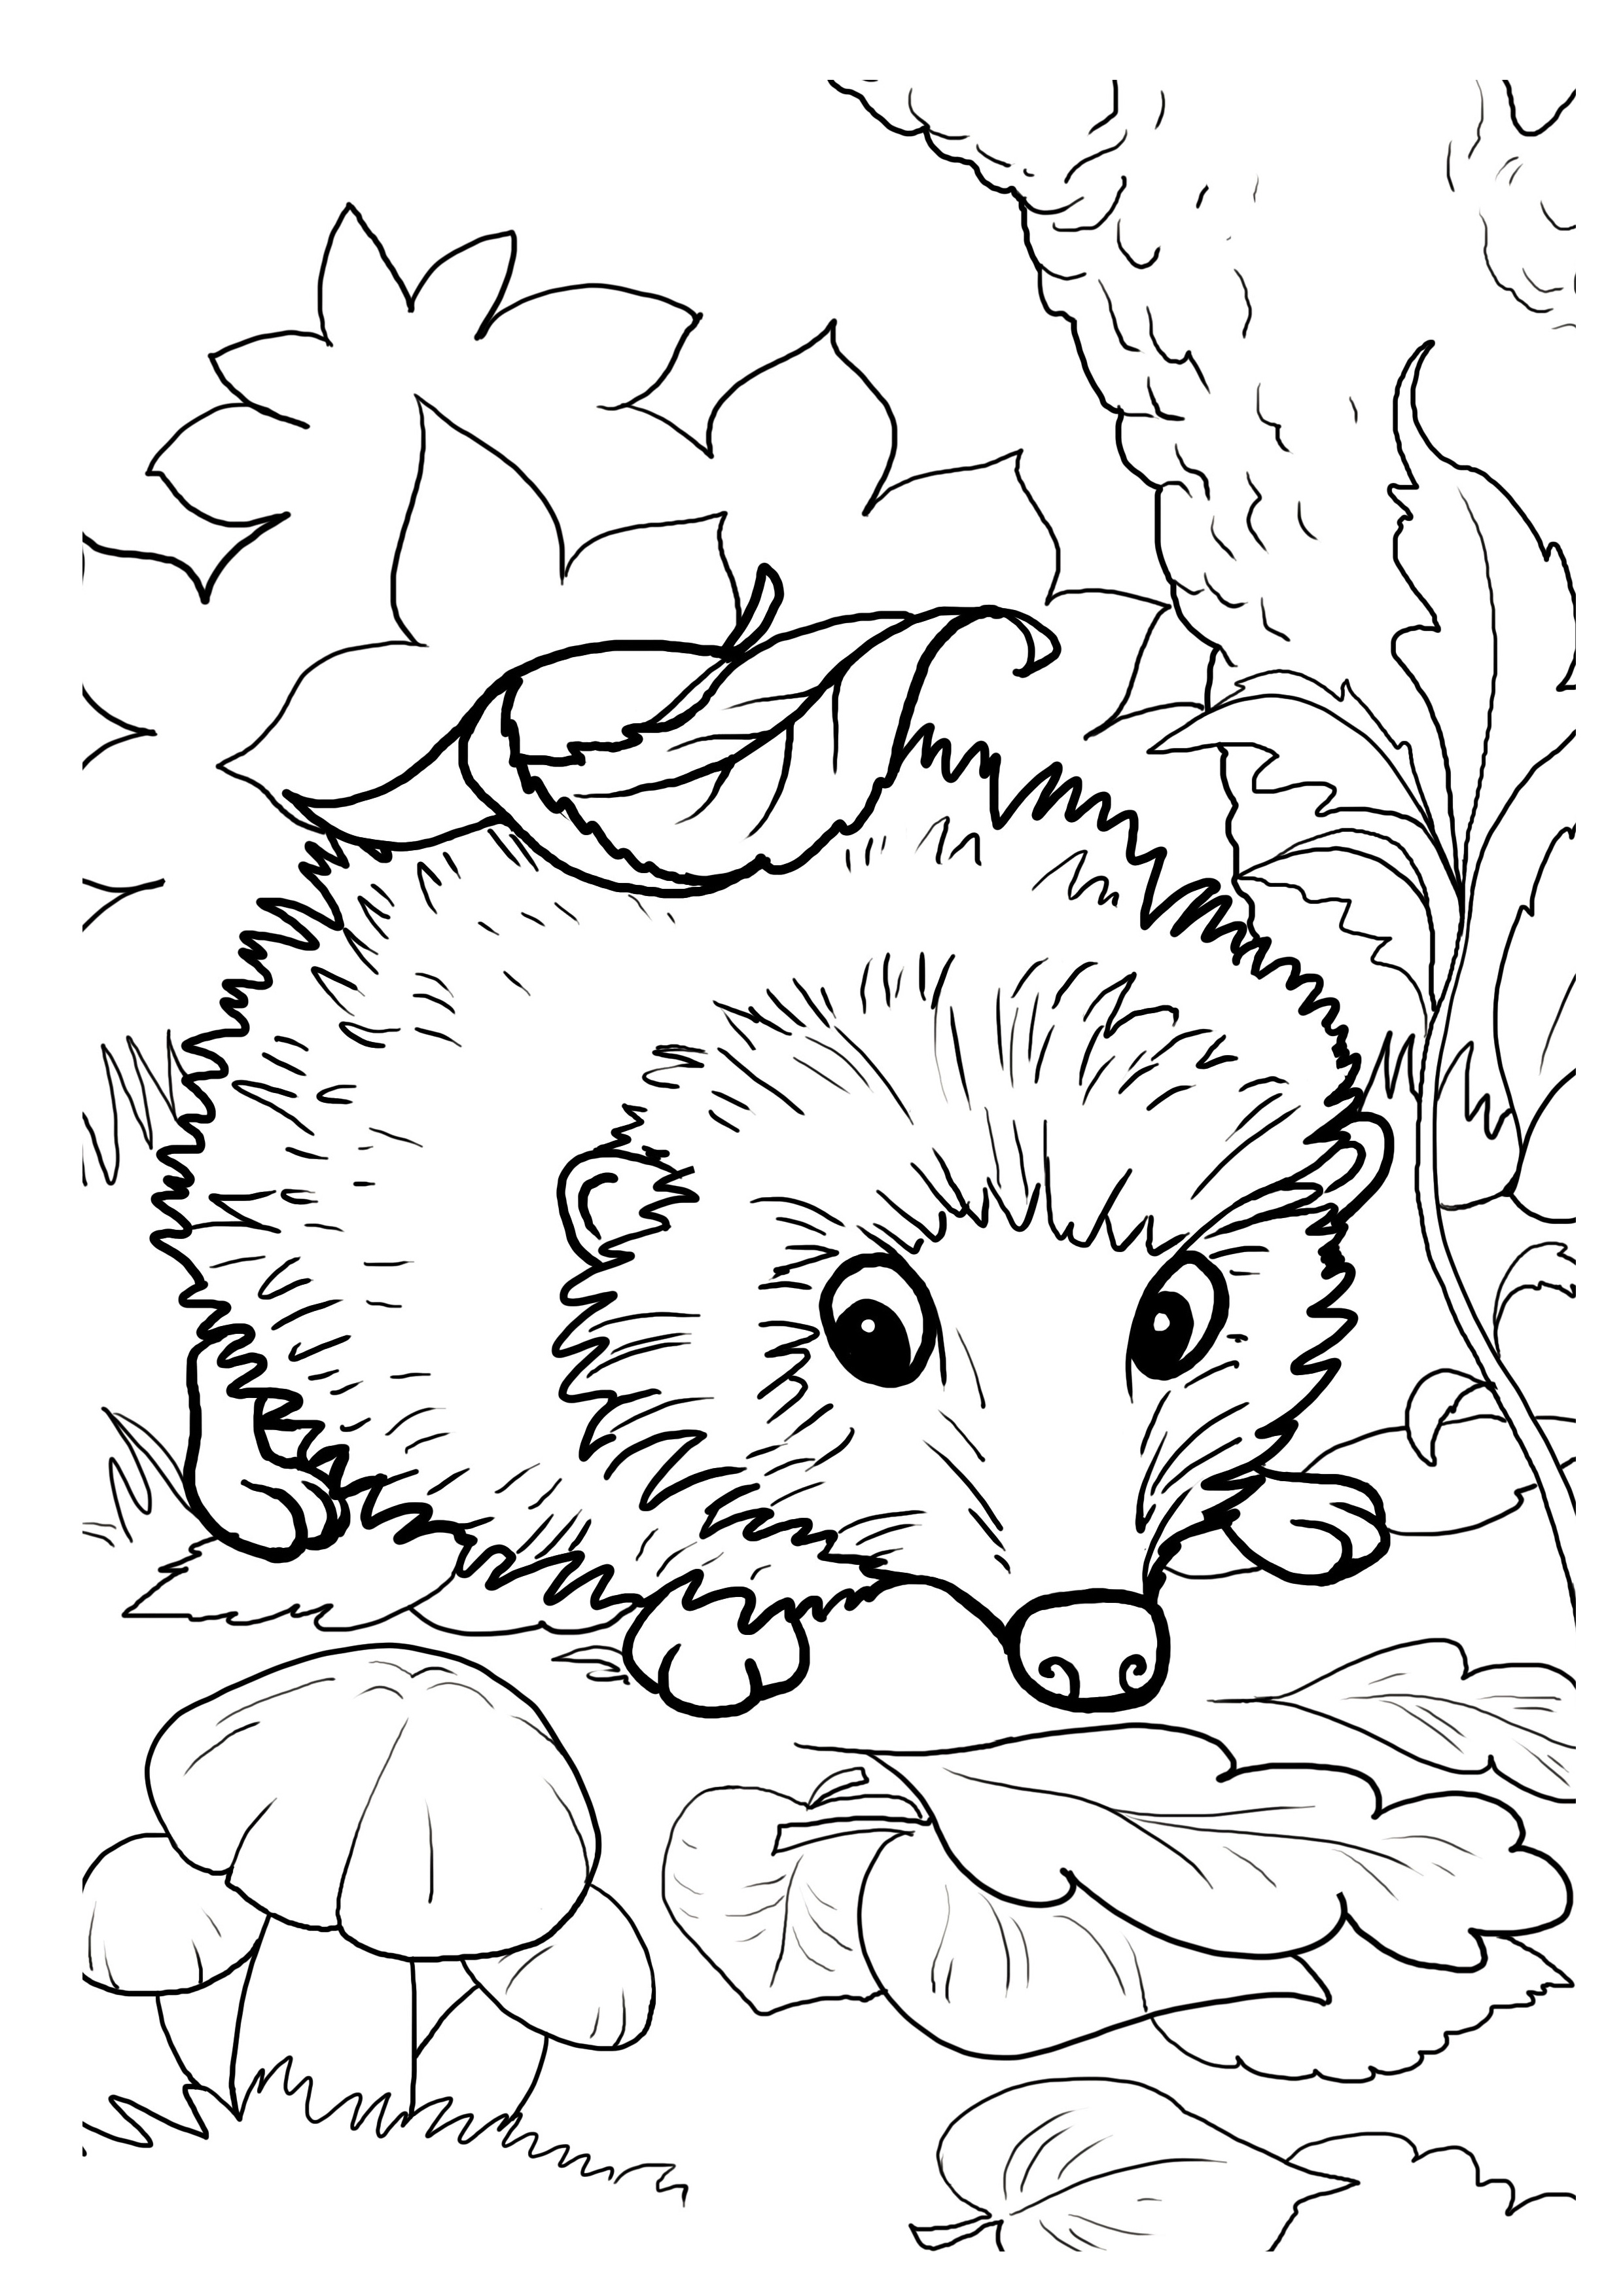 hedgehog pictures to color hedgehog coloring pages download and print hedgehog hedgehog to color pictures